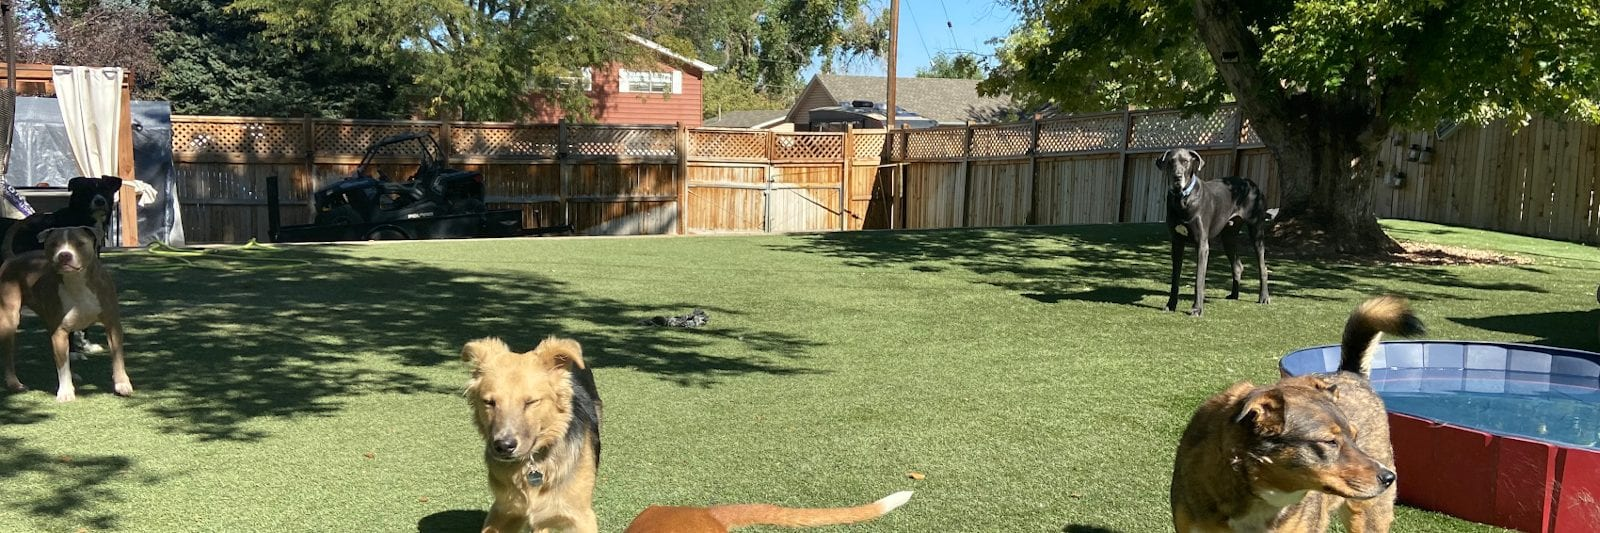 Rover Dog Sitting Backyard Denver Colorado